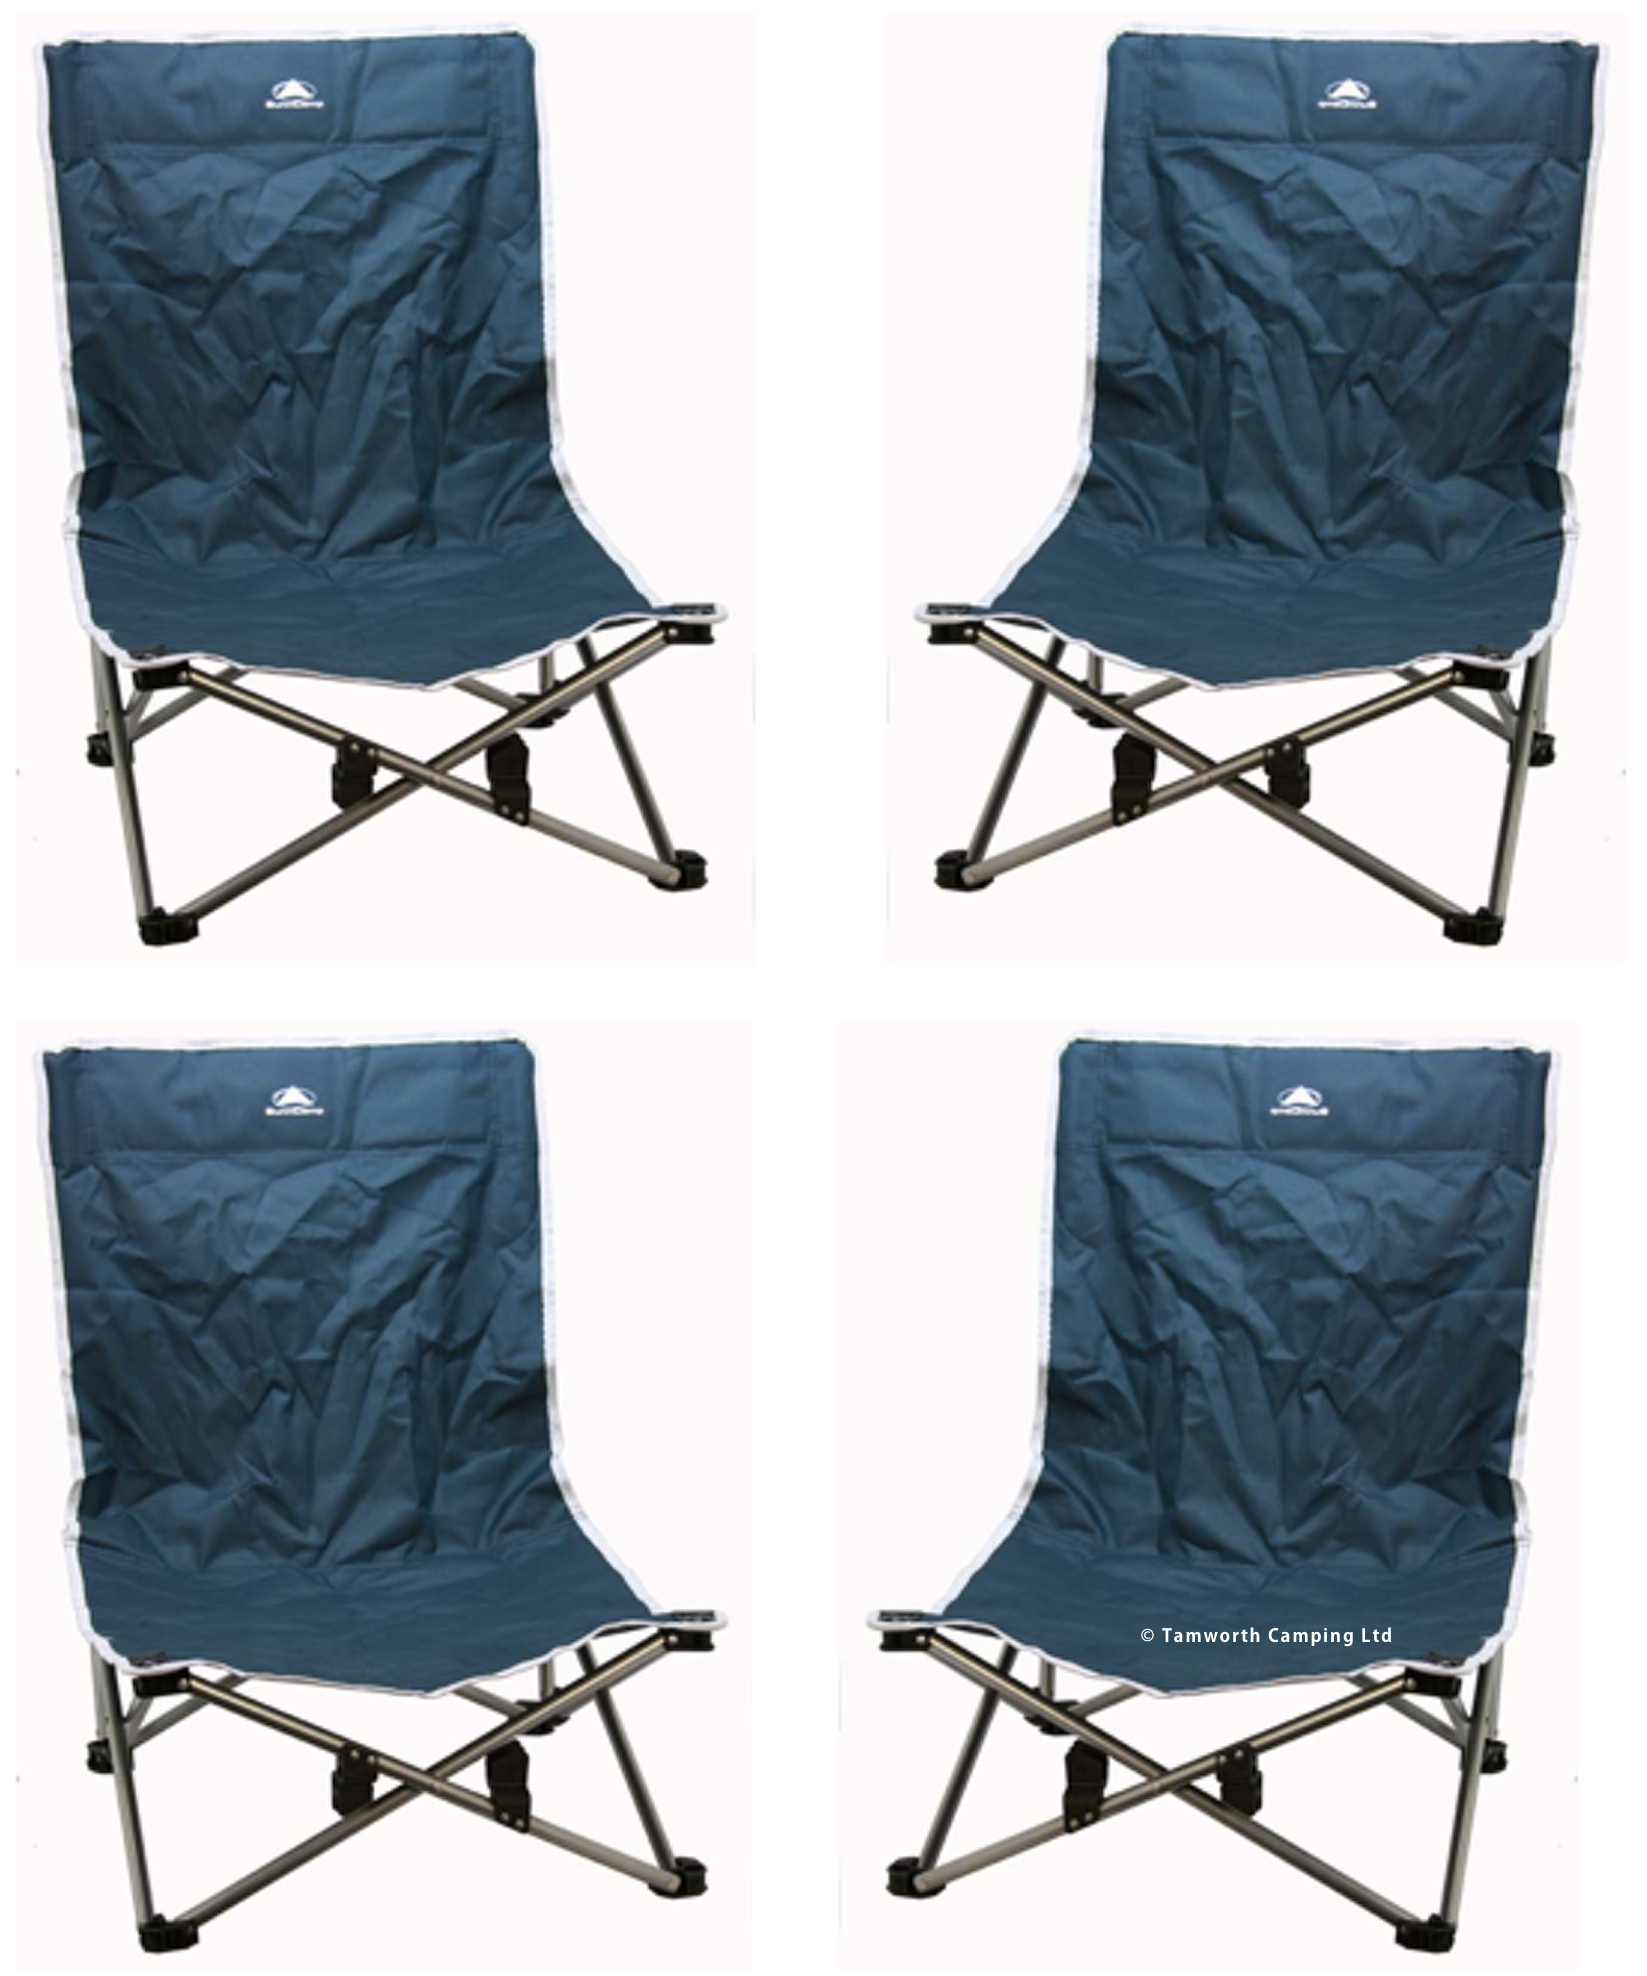 Sunncamp Low Folding Steel Beach Chair For Camping